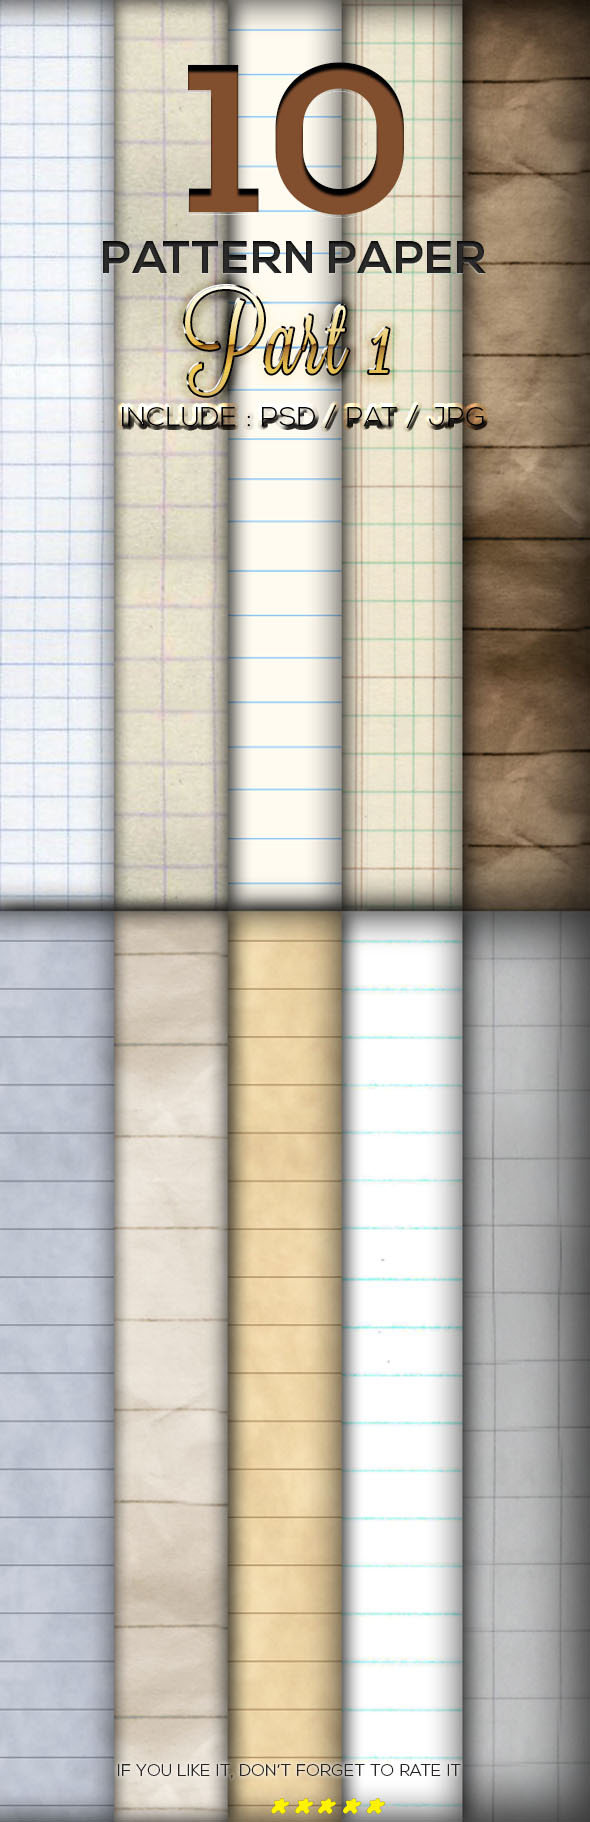 10 Lined Paper Pattern Part 1 - Textures / Fills / Patterns Photoshop